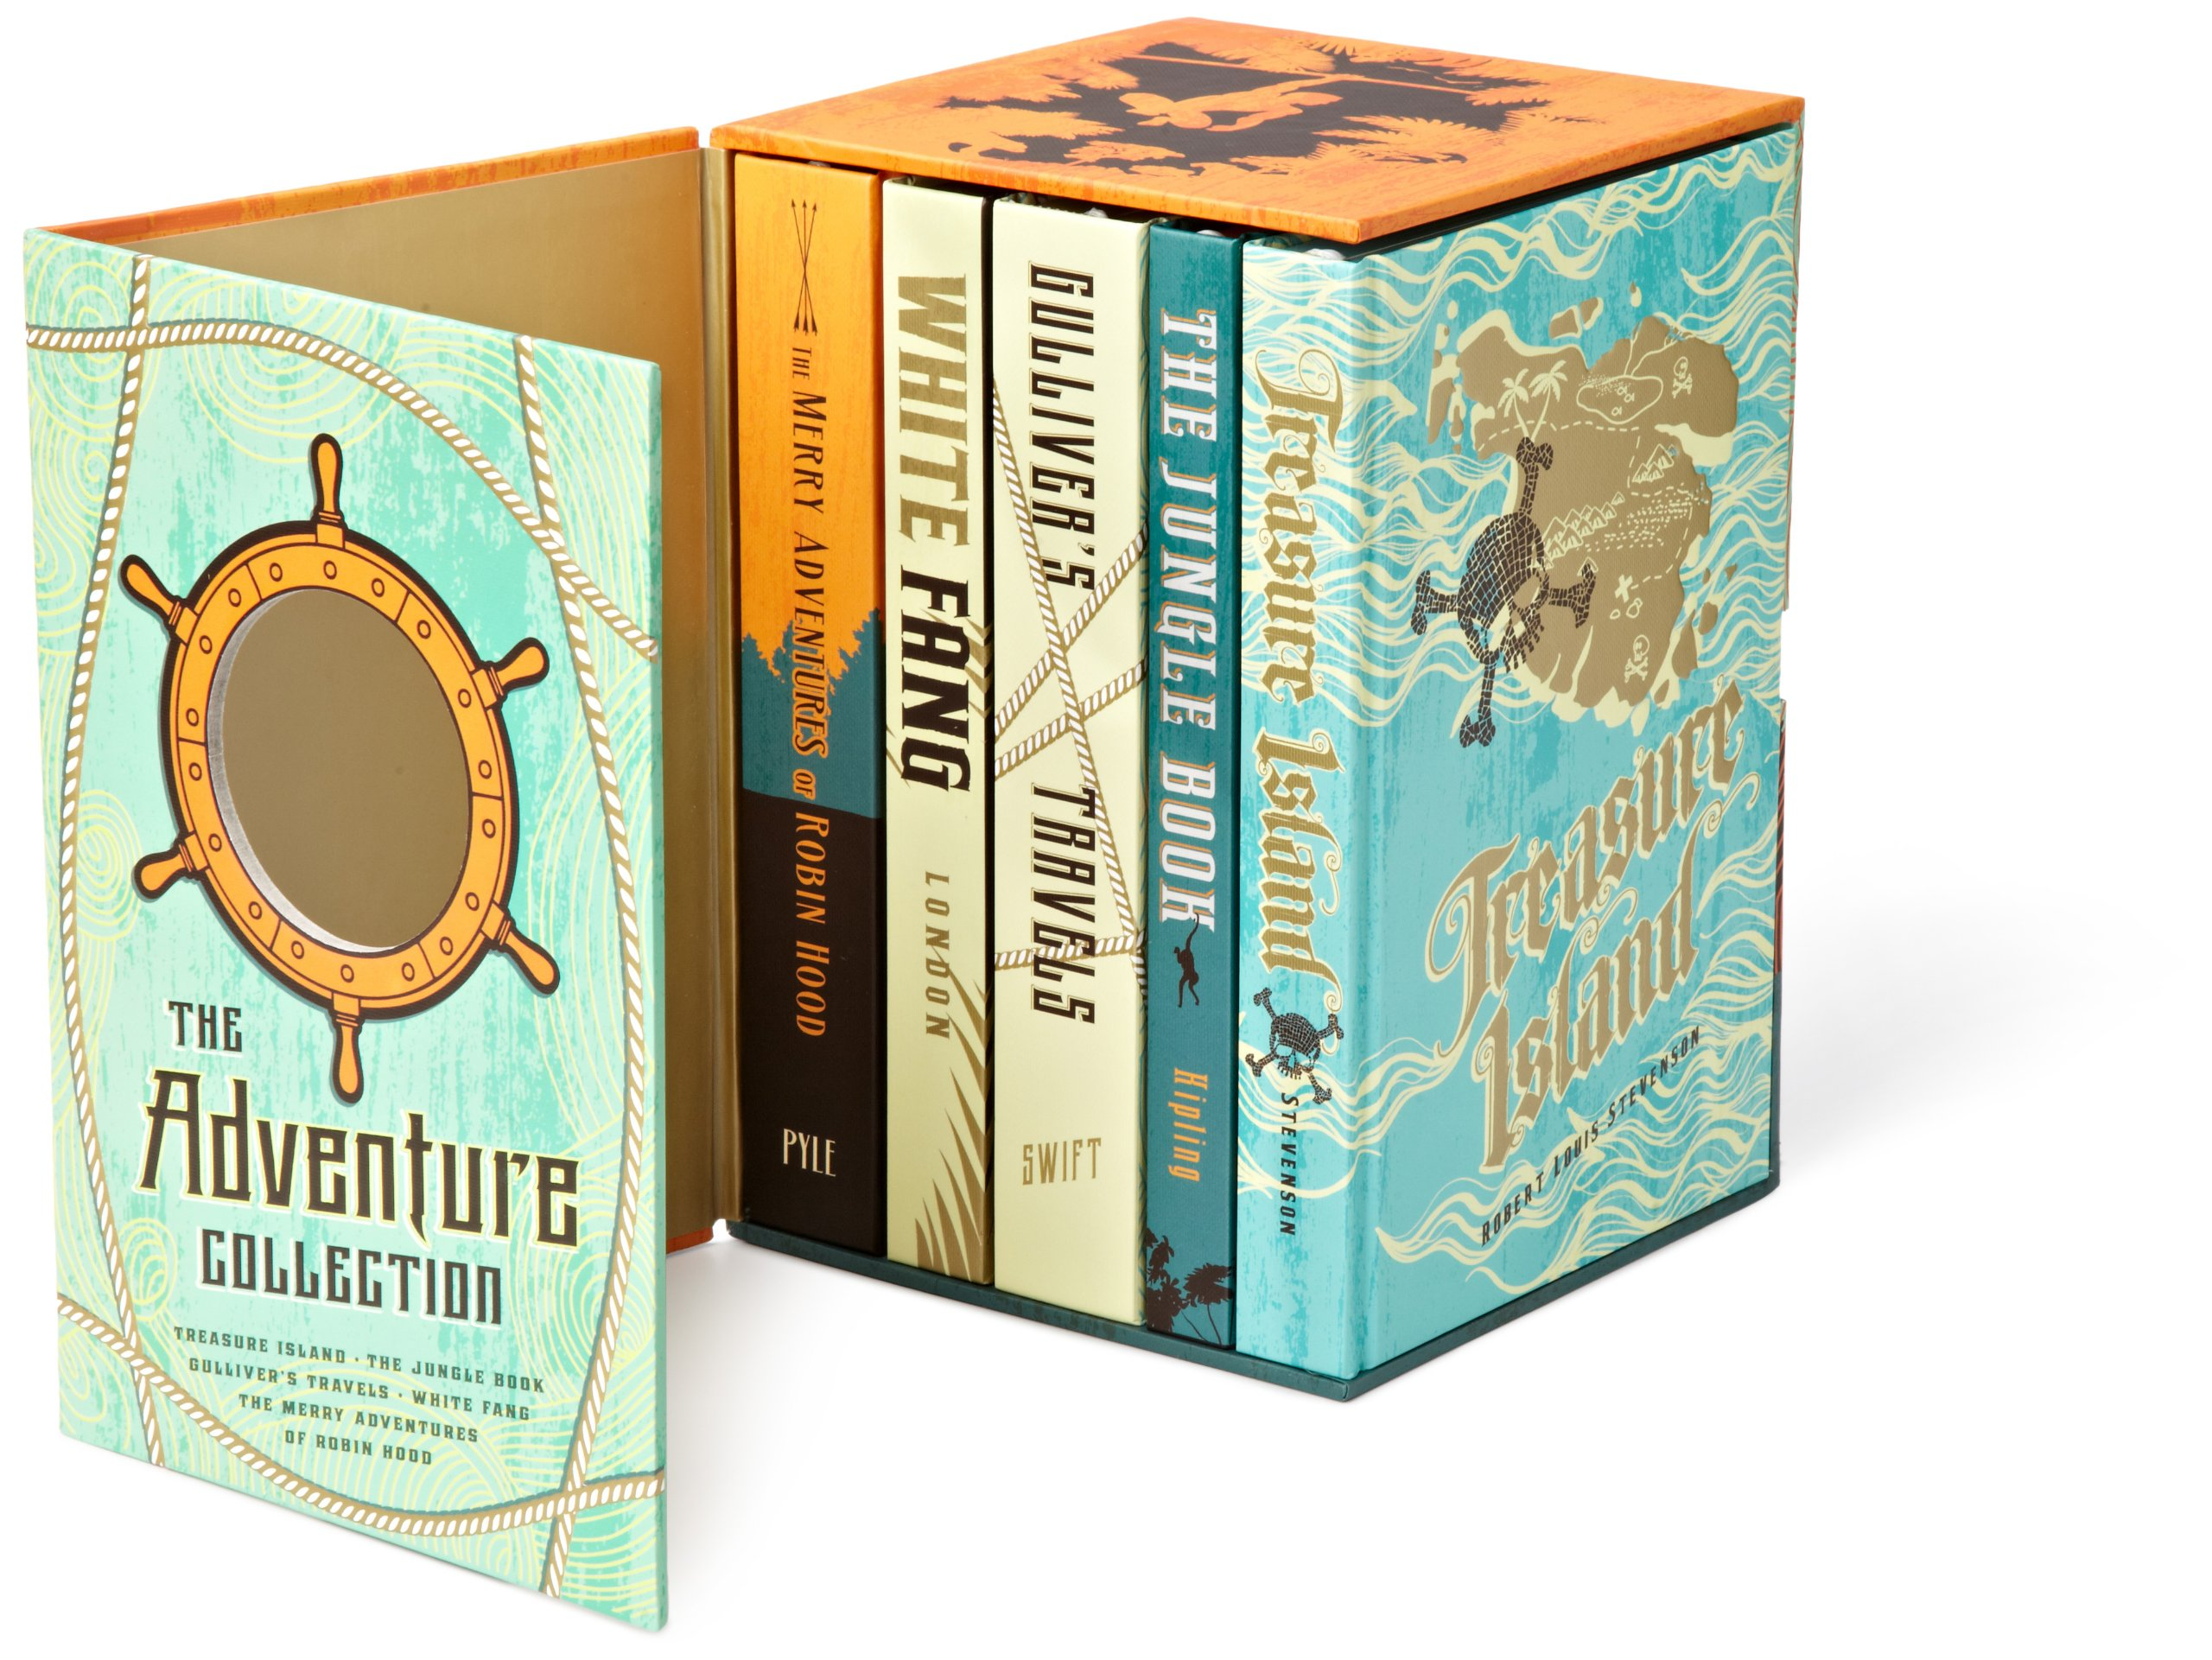 The Adventure Collection: Treasure Island, The Jungle Book, Gulliver's Travels, White Fang, The Merry Adventures of Robin Hood (The Heirloom Collection) by Brand: Two Lions (Image #3)